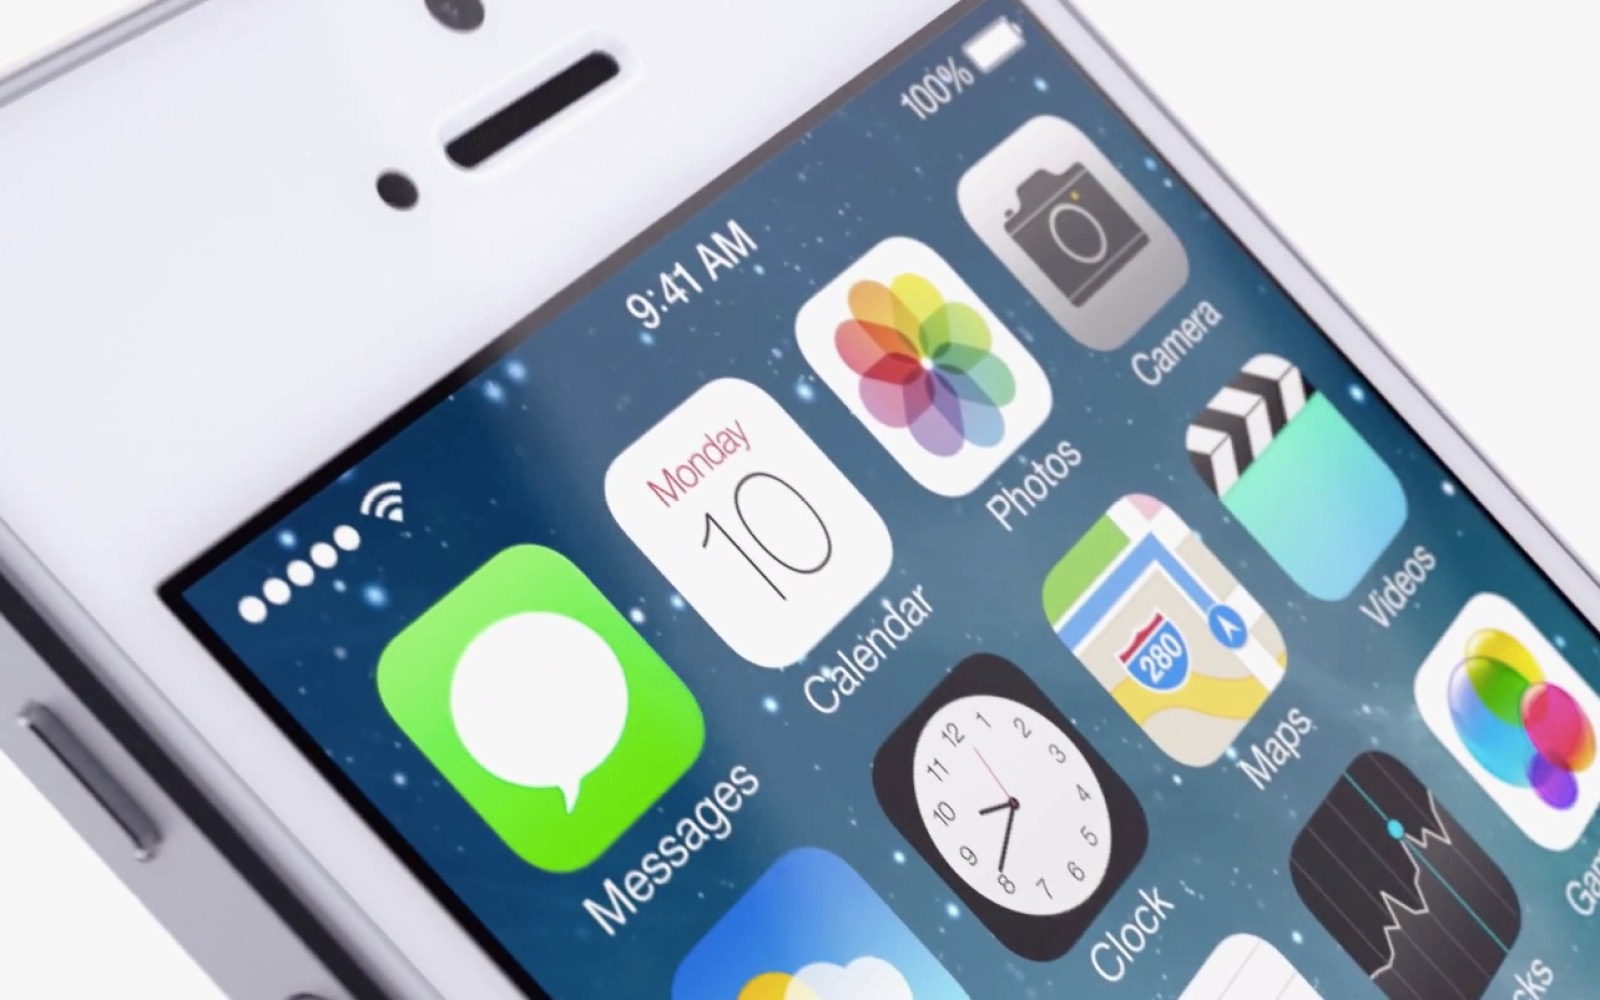 iOS bug causes Messages to crash, iPhone to reboot when a certain text is received